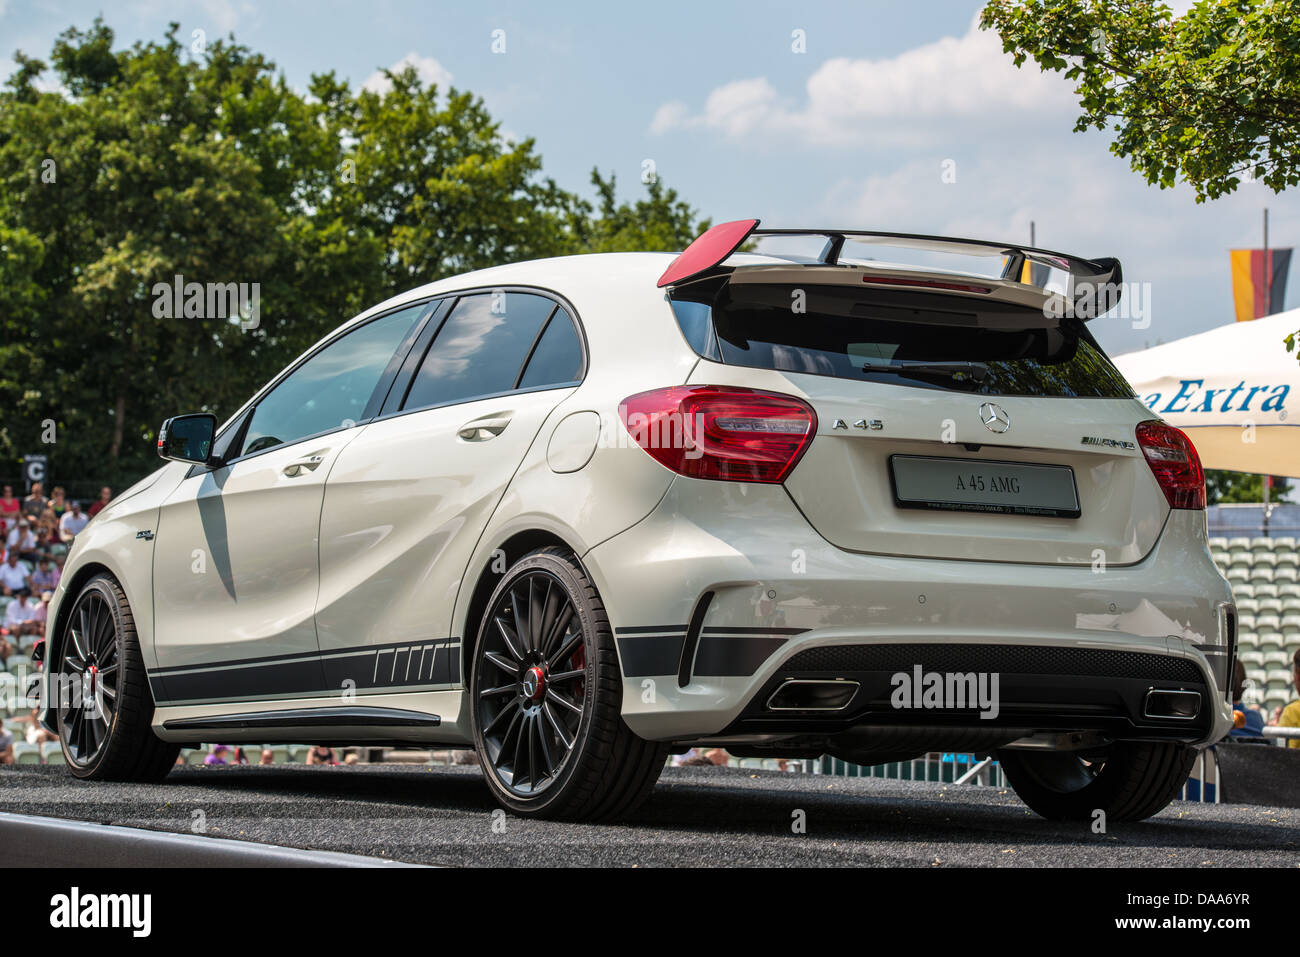 mercedes a class amg 45 as atp trophy in stuttgart germany stock photo 58002667 alamy. Black Bedroom Furniture Sets. Home Design Ideas